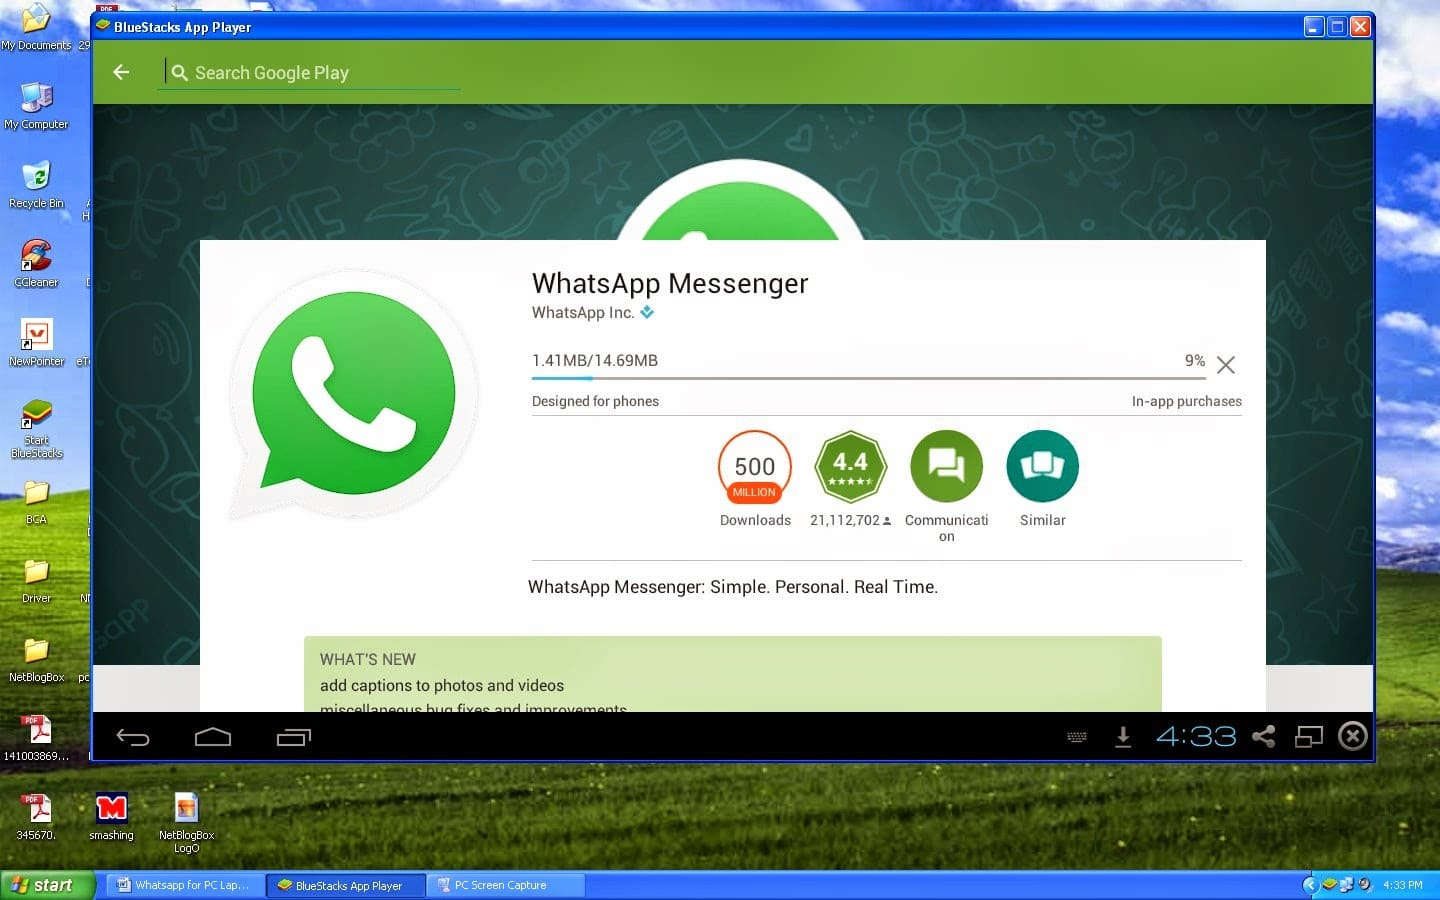 Whatsapp-Free-Download-And-Install-On-PC-And-Laptop-Running-On-Windows-7-8.1-And-Mac